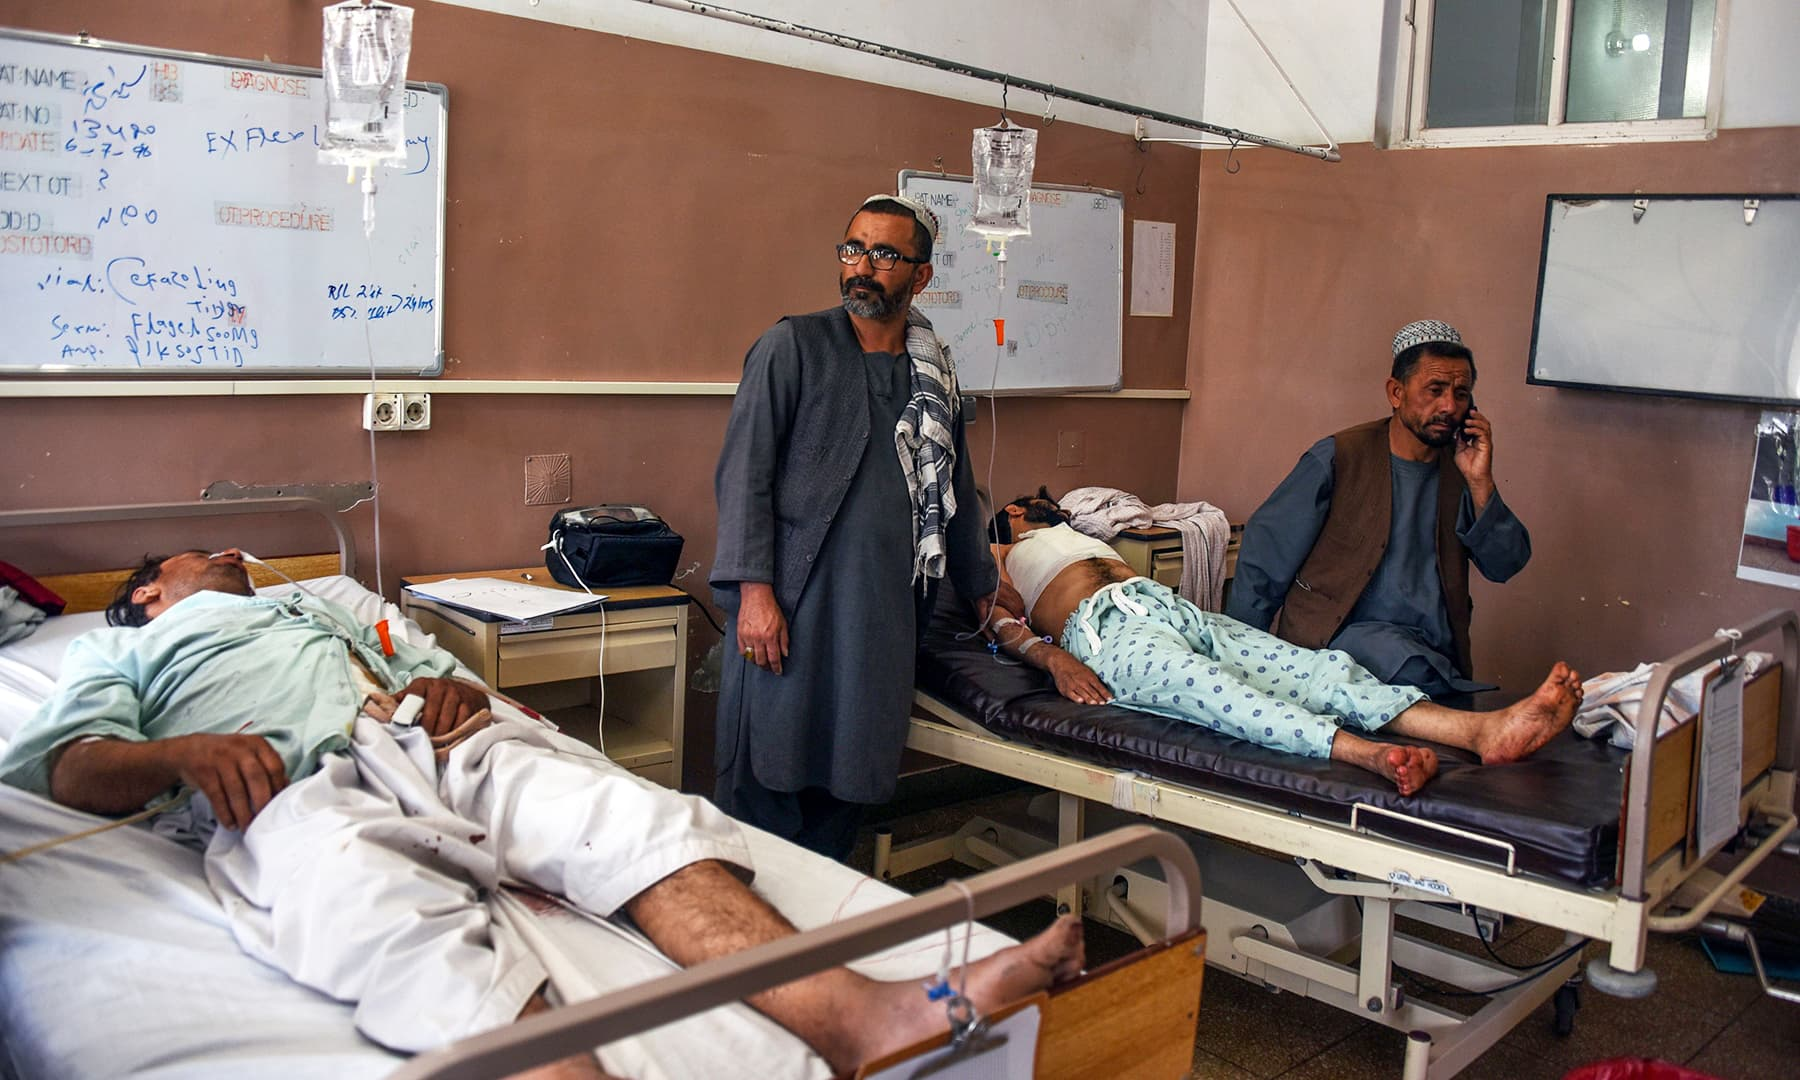 Wounded men receive treatment at a hospital following a blast in Kandahar Province. — AFP